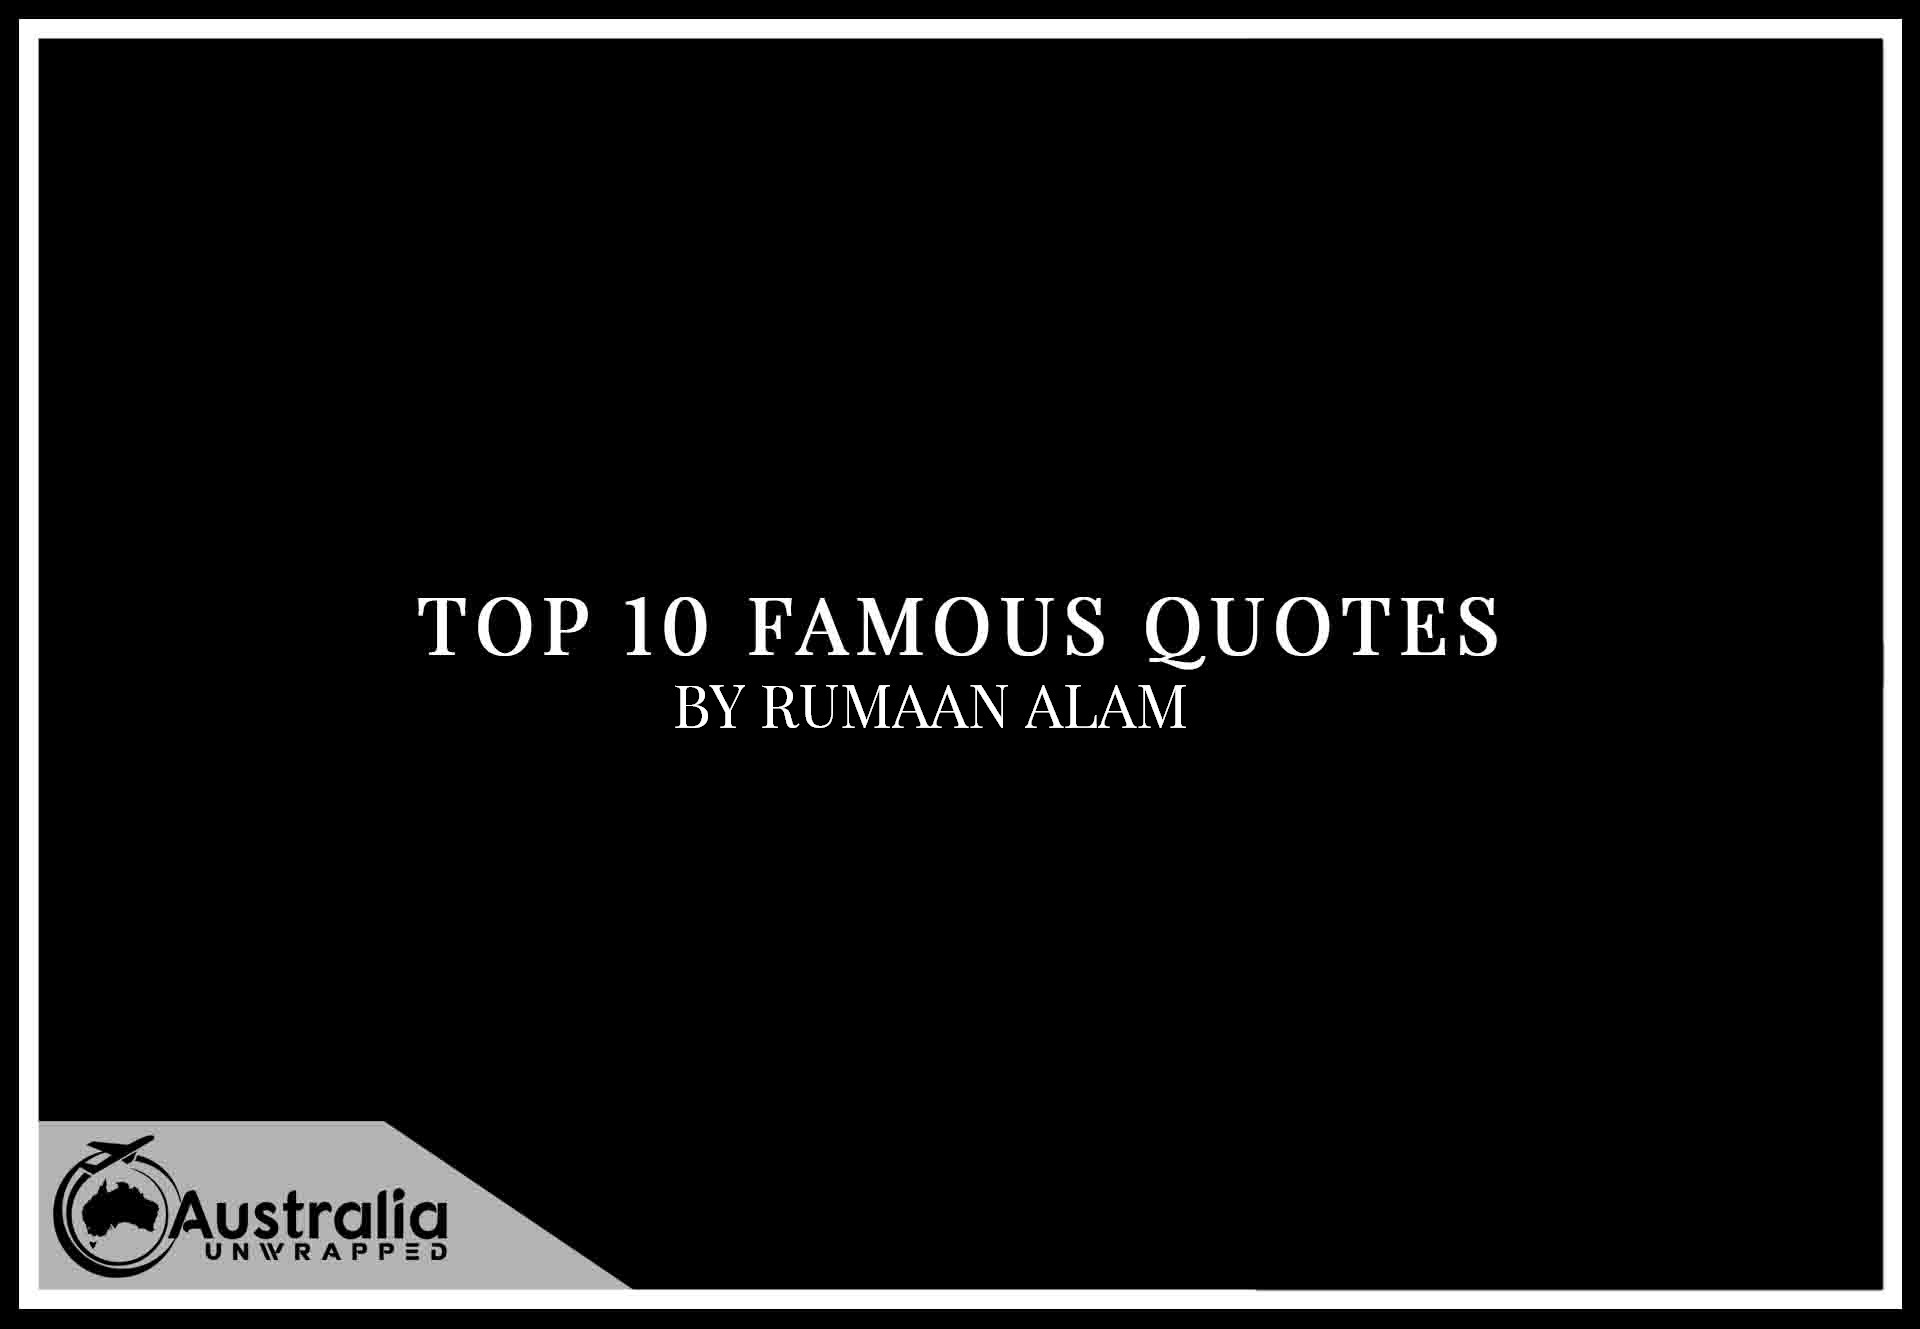 Top 10 Famous Quotes by Author Rumaan Alam